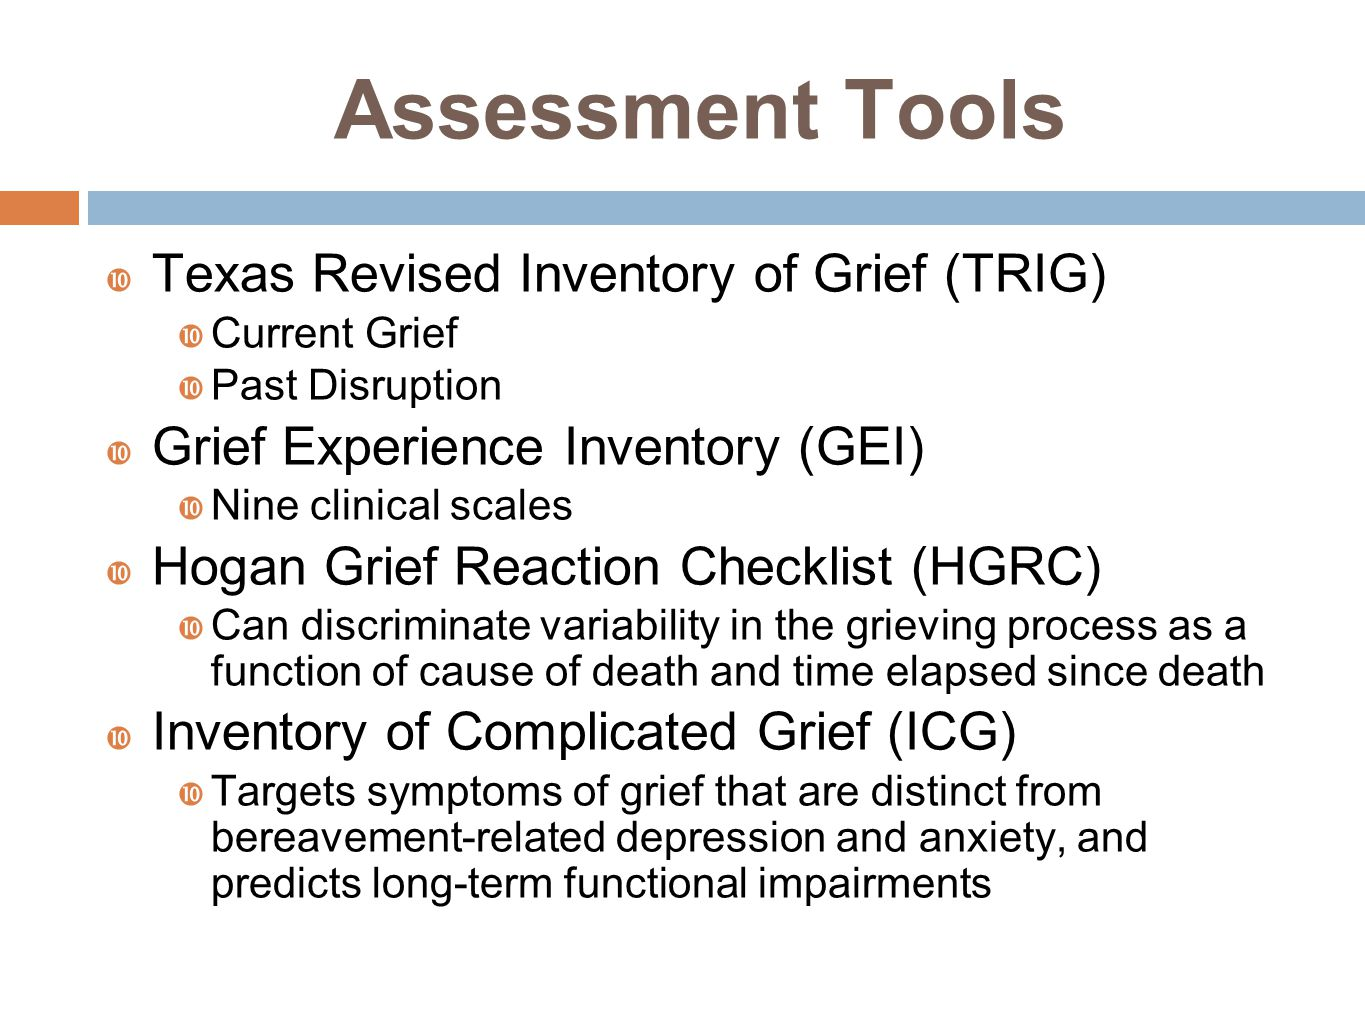 Assessment Tools  Texas Revised Inventory of Grief (TRIG)  Current Grief  Past Disruption  Grief Experience Inventory (GEI)  Nine clinical scales  Hogan Grief Reaction Checklist (HGRC)  Can discriminate variability in the grieving process as a function of cause of death and time elapsed since death  Inventory of Complicated Grief (ICG)  Targets symptoms of grief that are distinct from bereavement-related depression and anxiety, and predicts long-term functional impairments